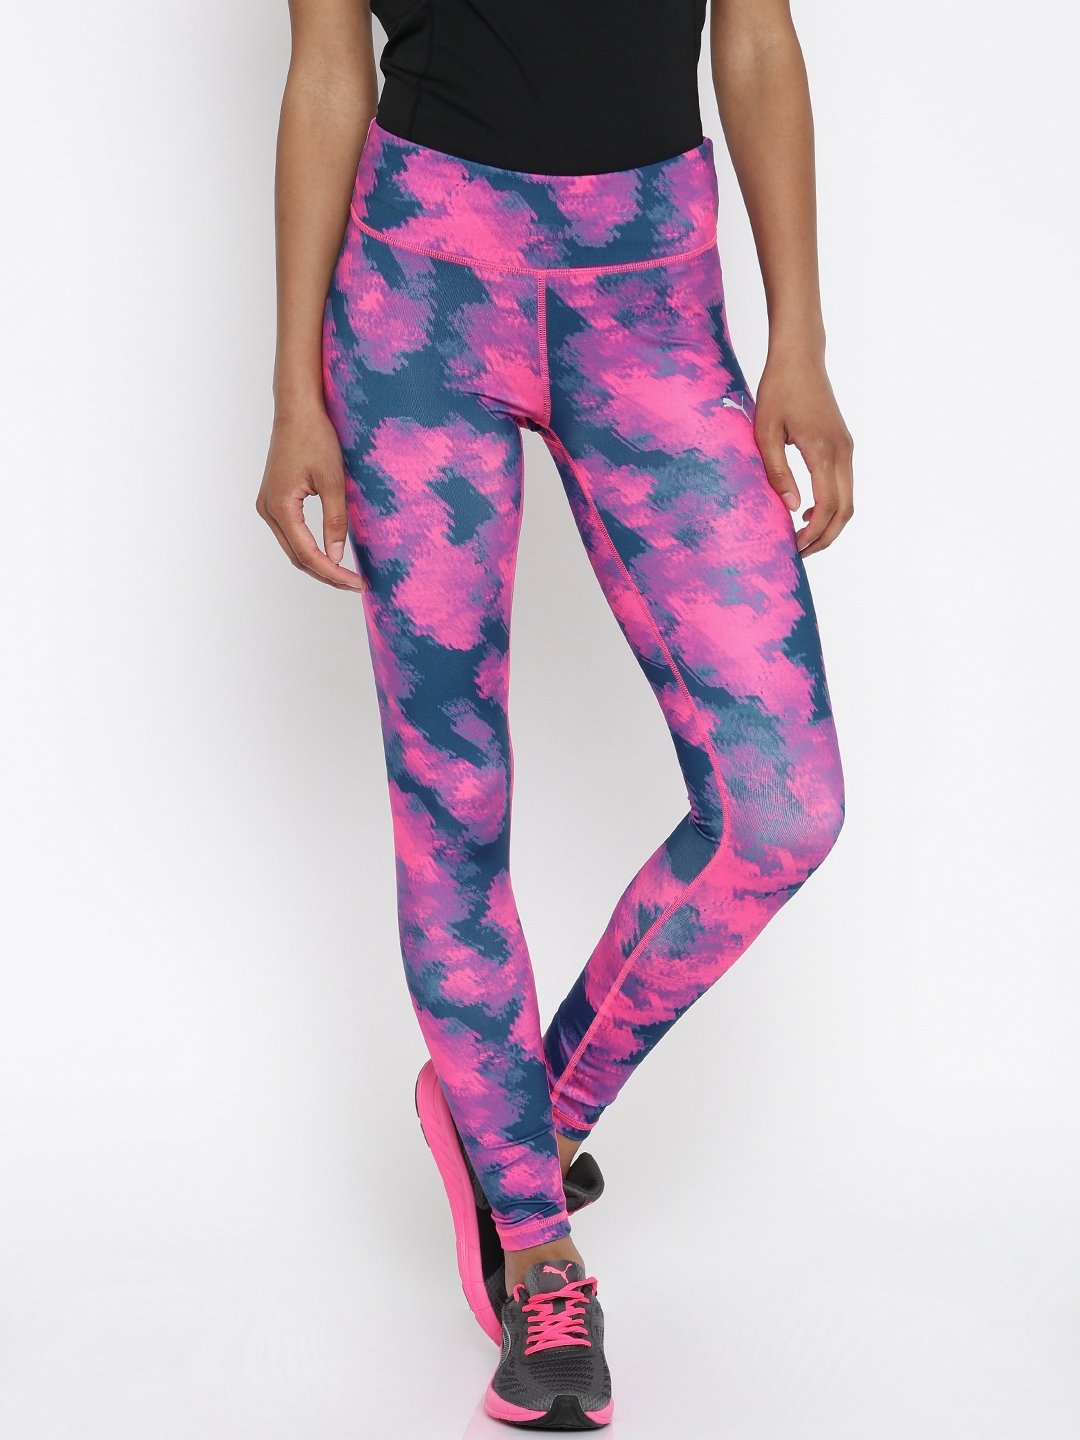 07dcacff244372 Buy Puma Blue & Pink All Eyes On Me Printed Tights - Tights for ...